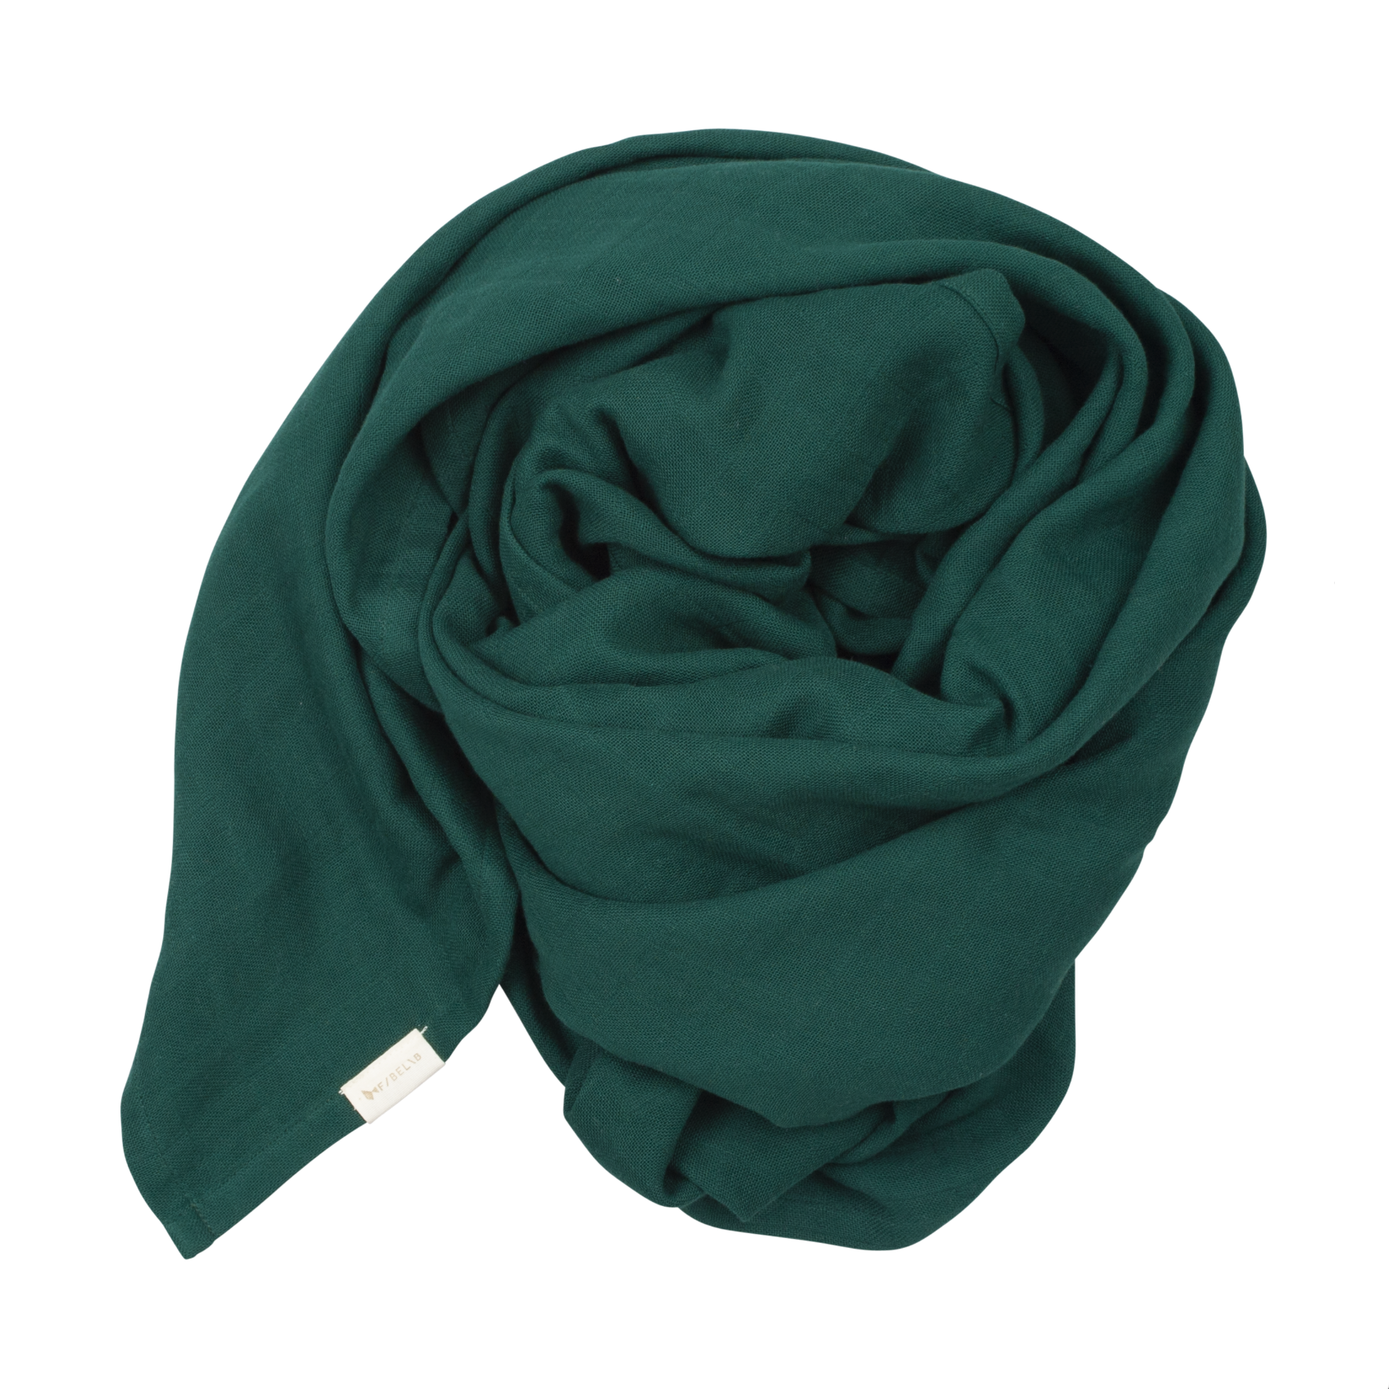 Organic Cotton Swaddle in Ever Green (120 x 120cm)